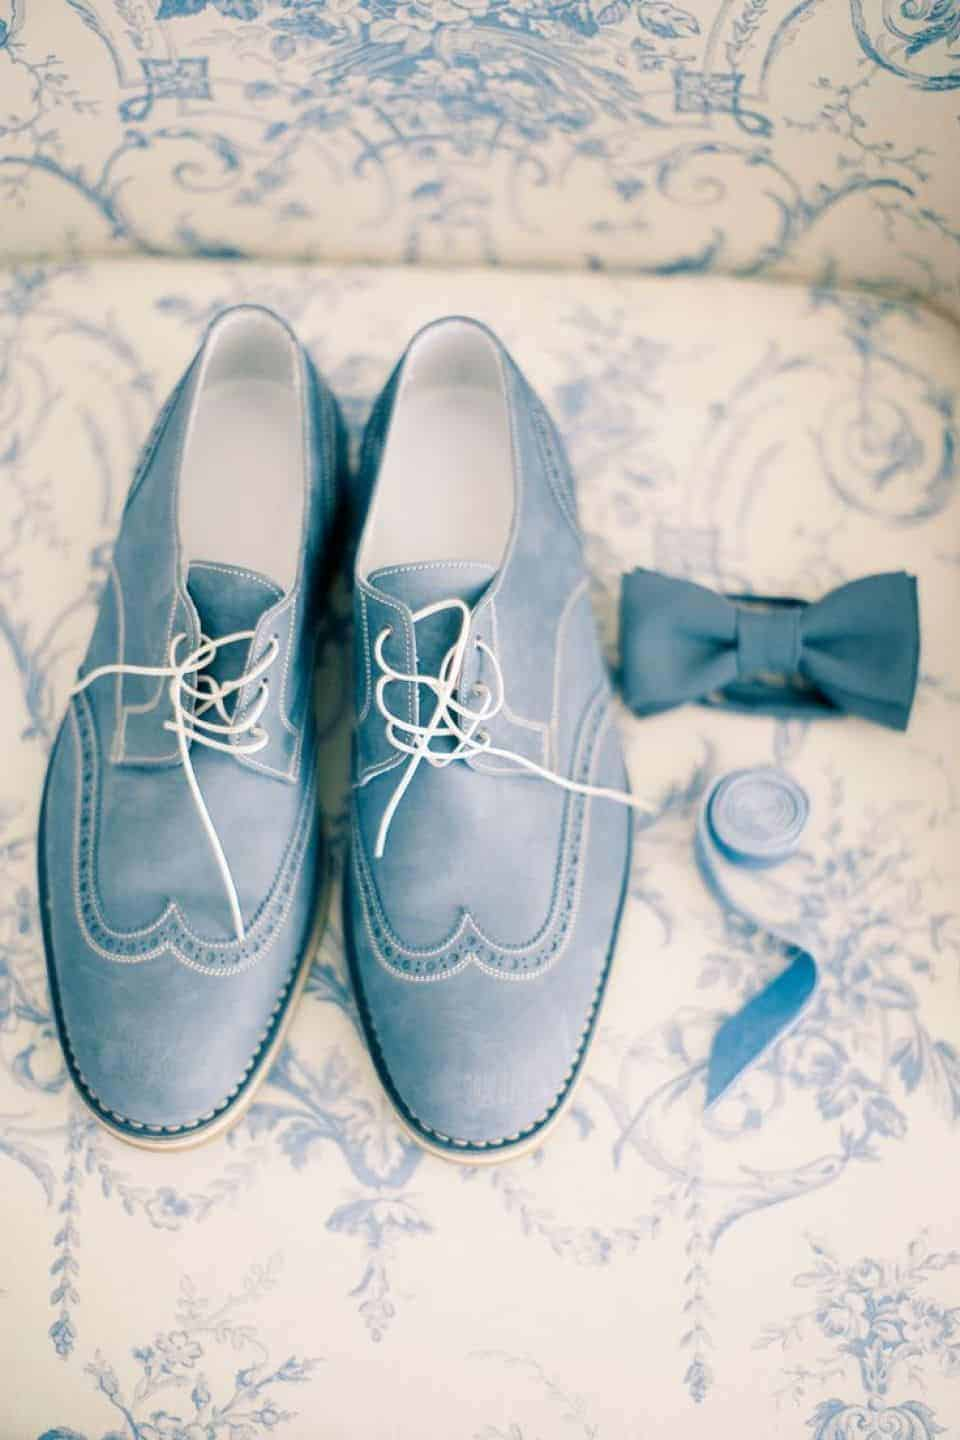 groom shoes in dusty blue colour